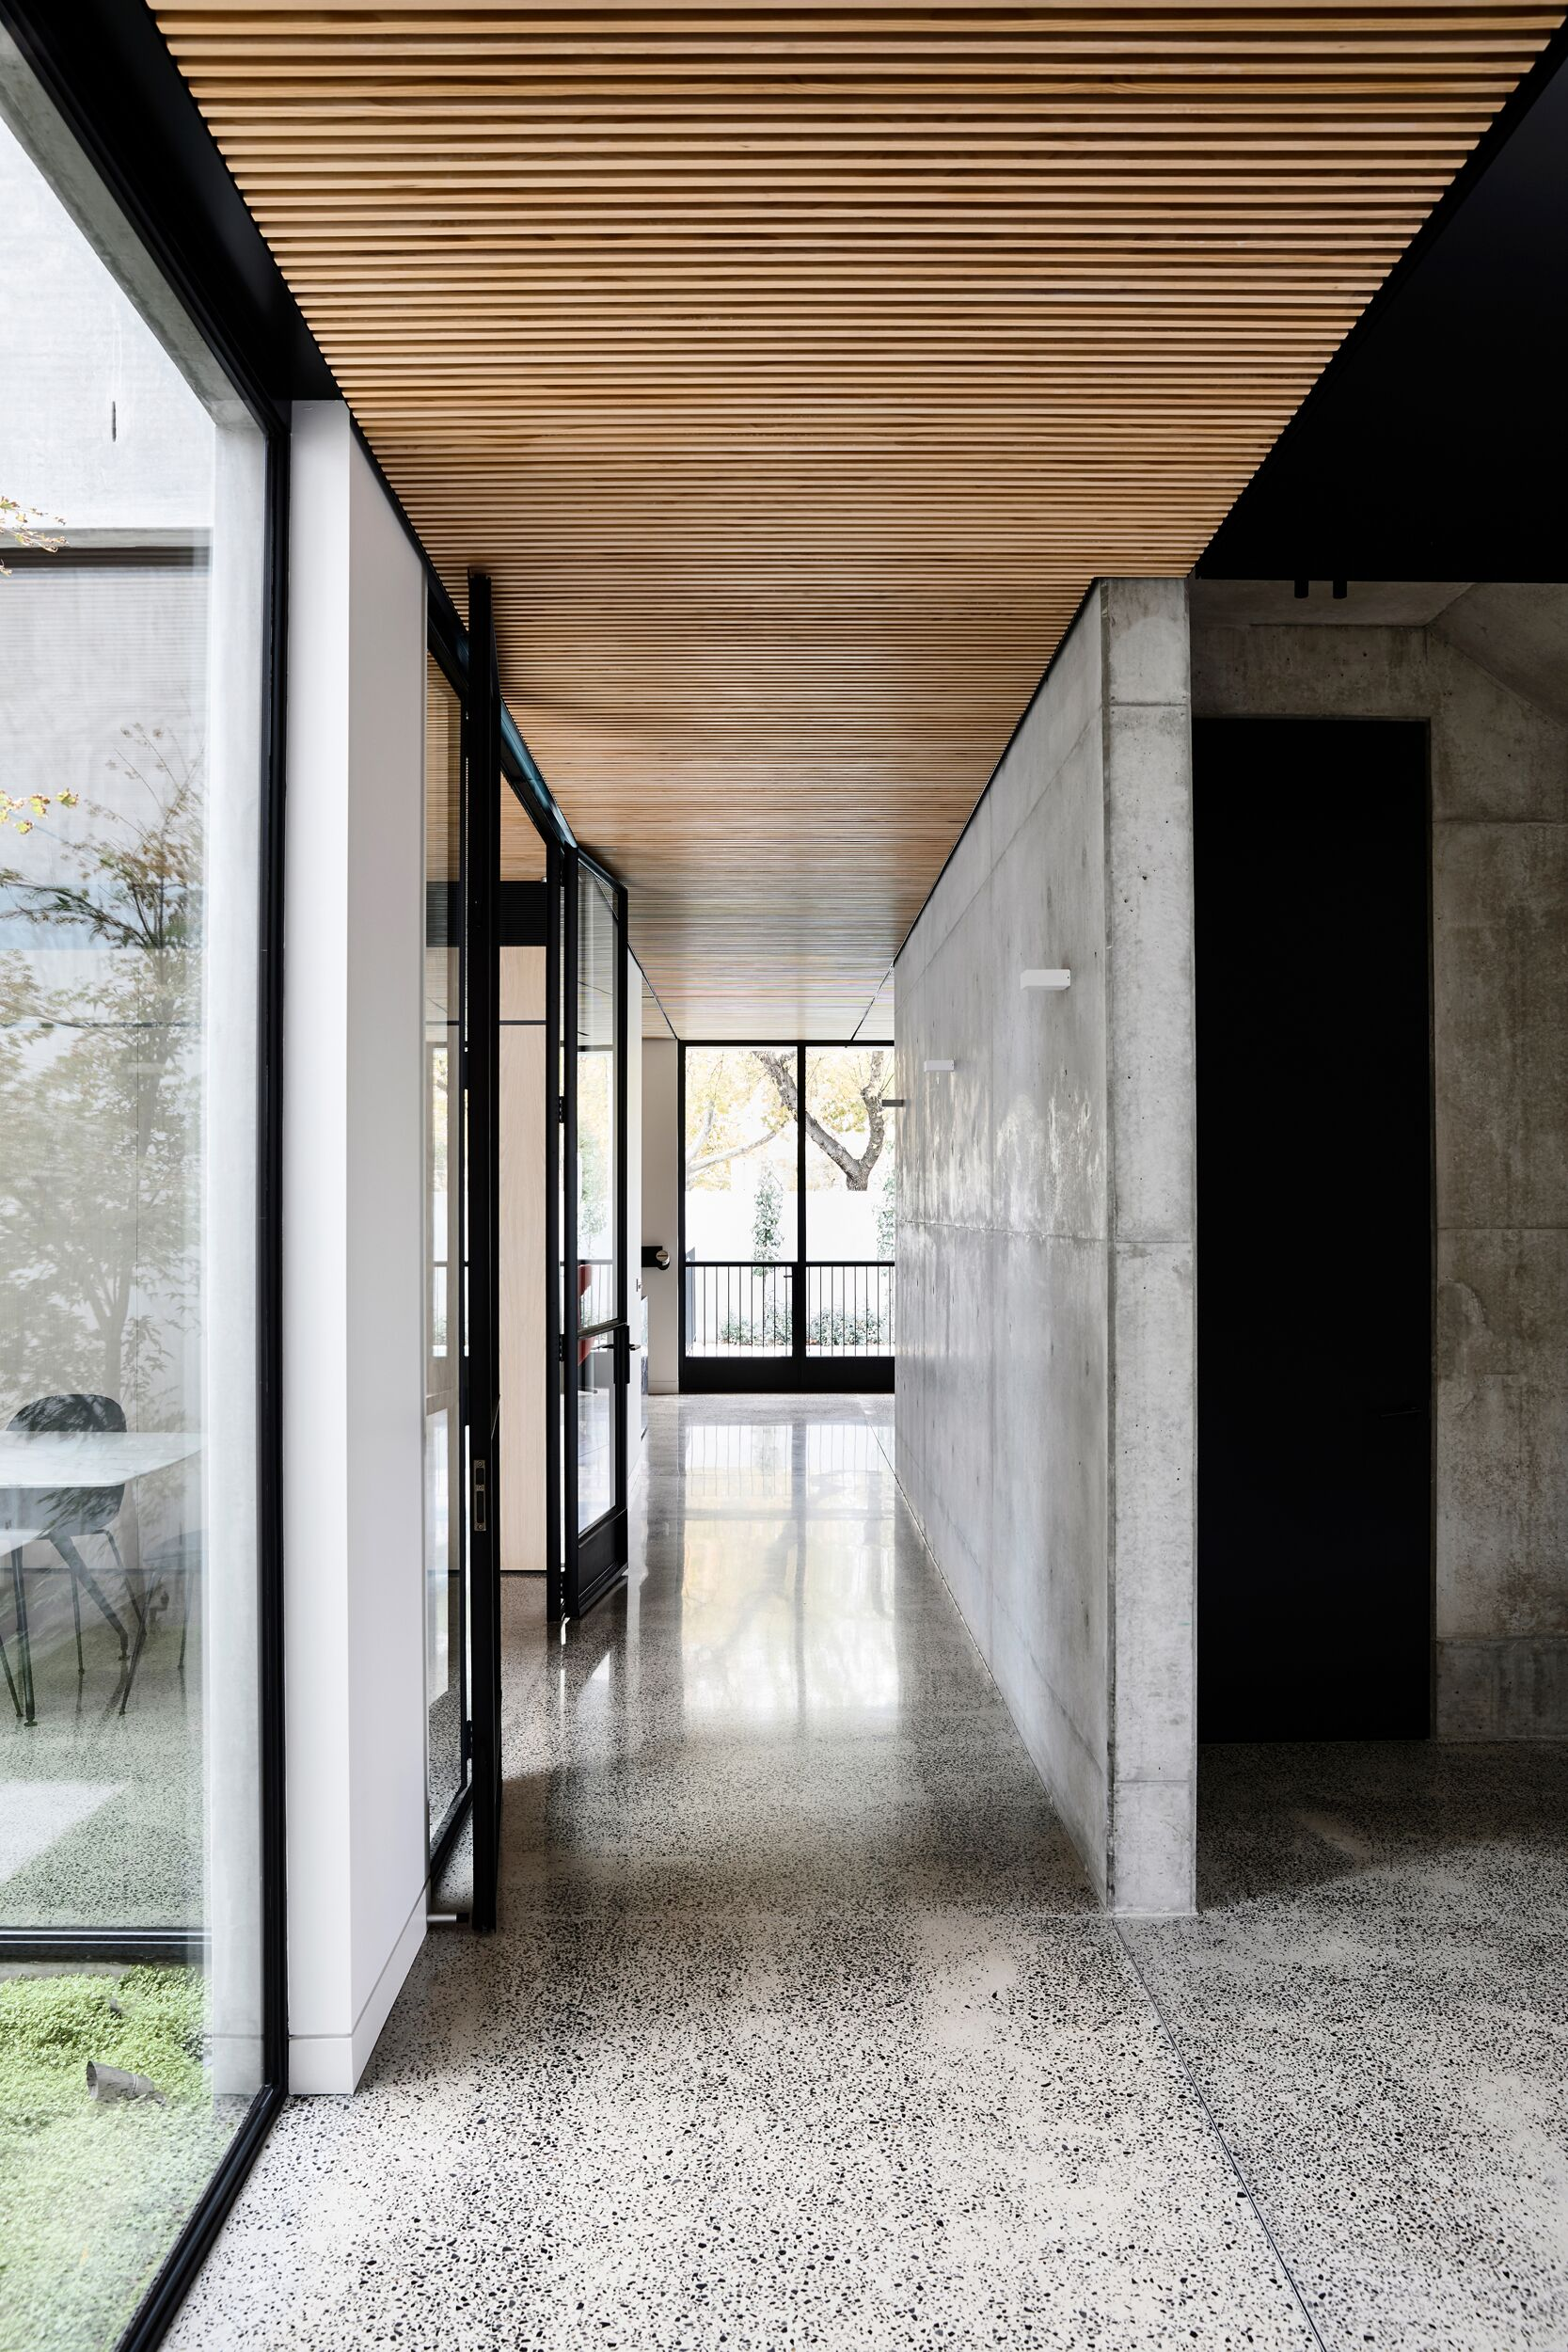 Chamberlain Architects Chose To Work With Concrete's Dramatic Qualities